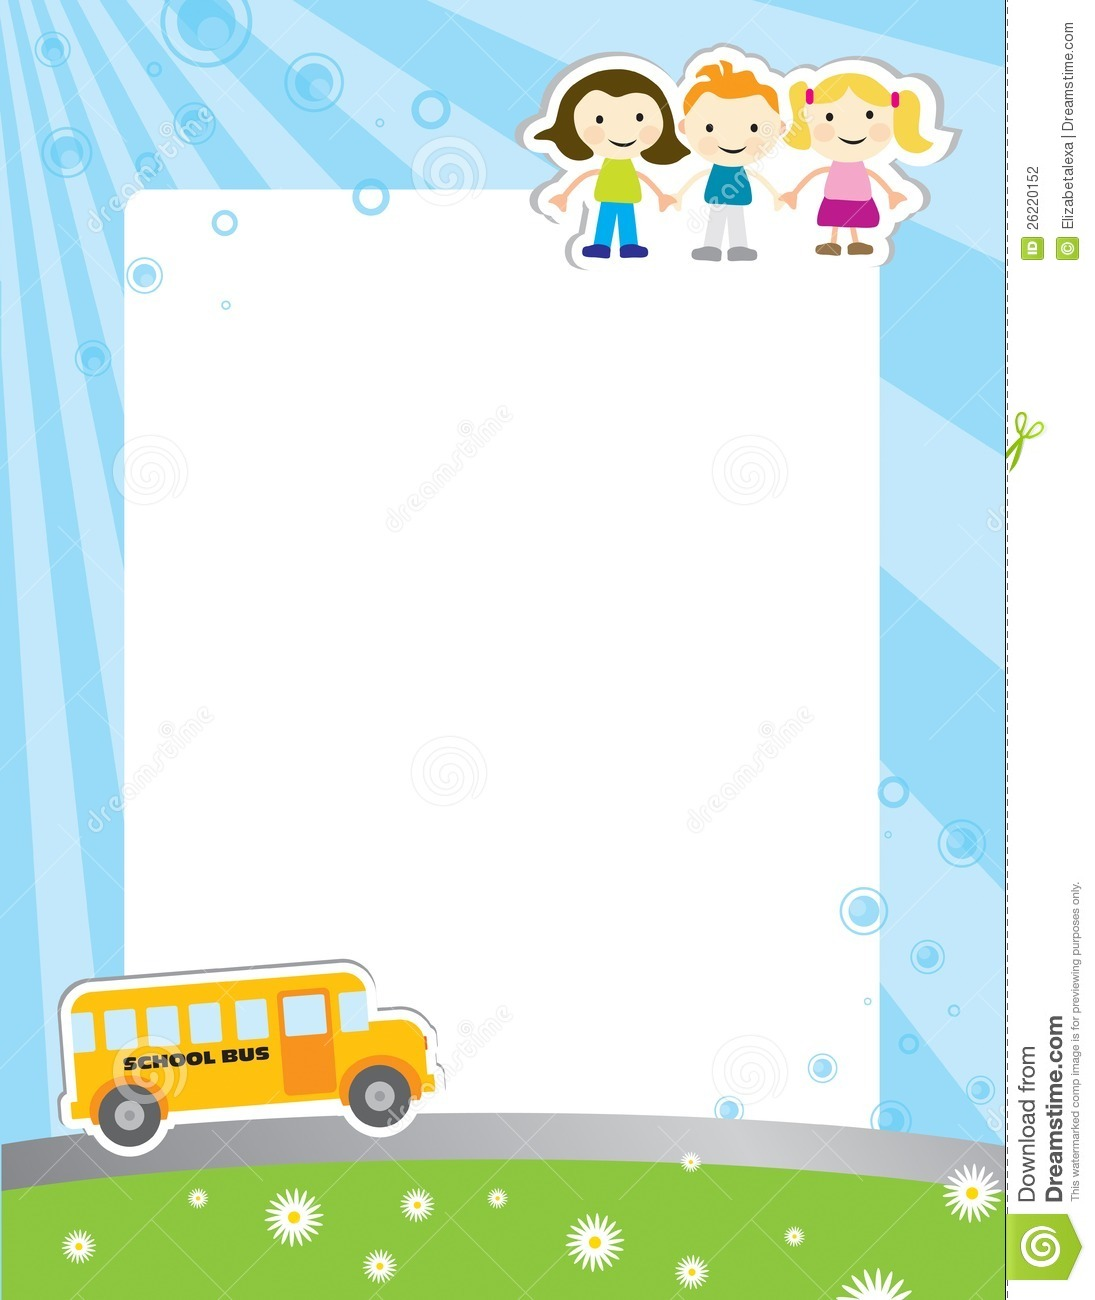 template background for school poster with illustration of three kids